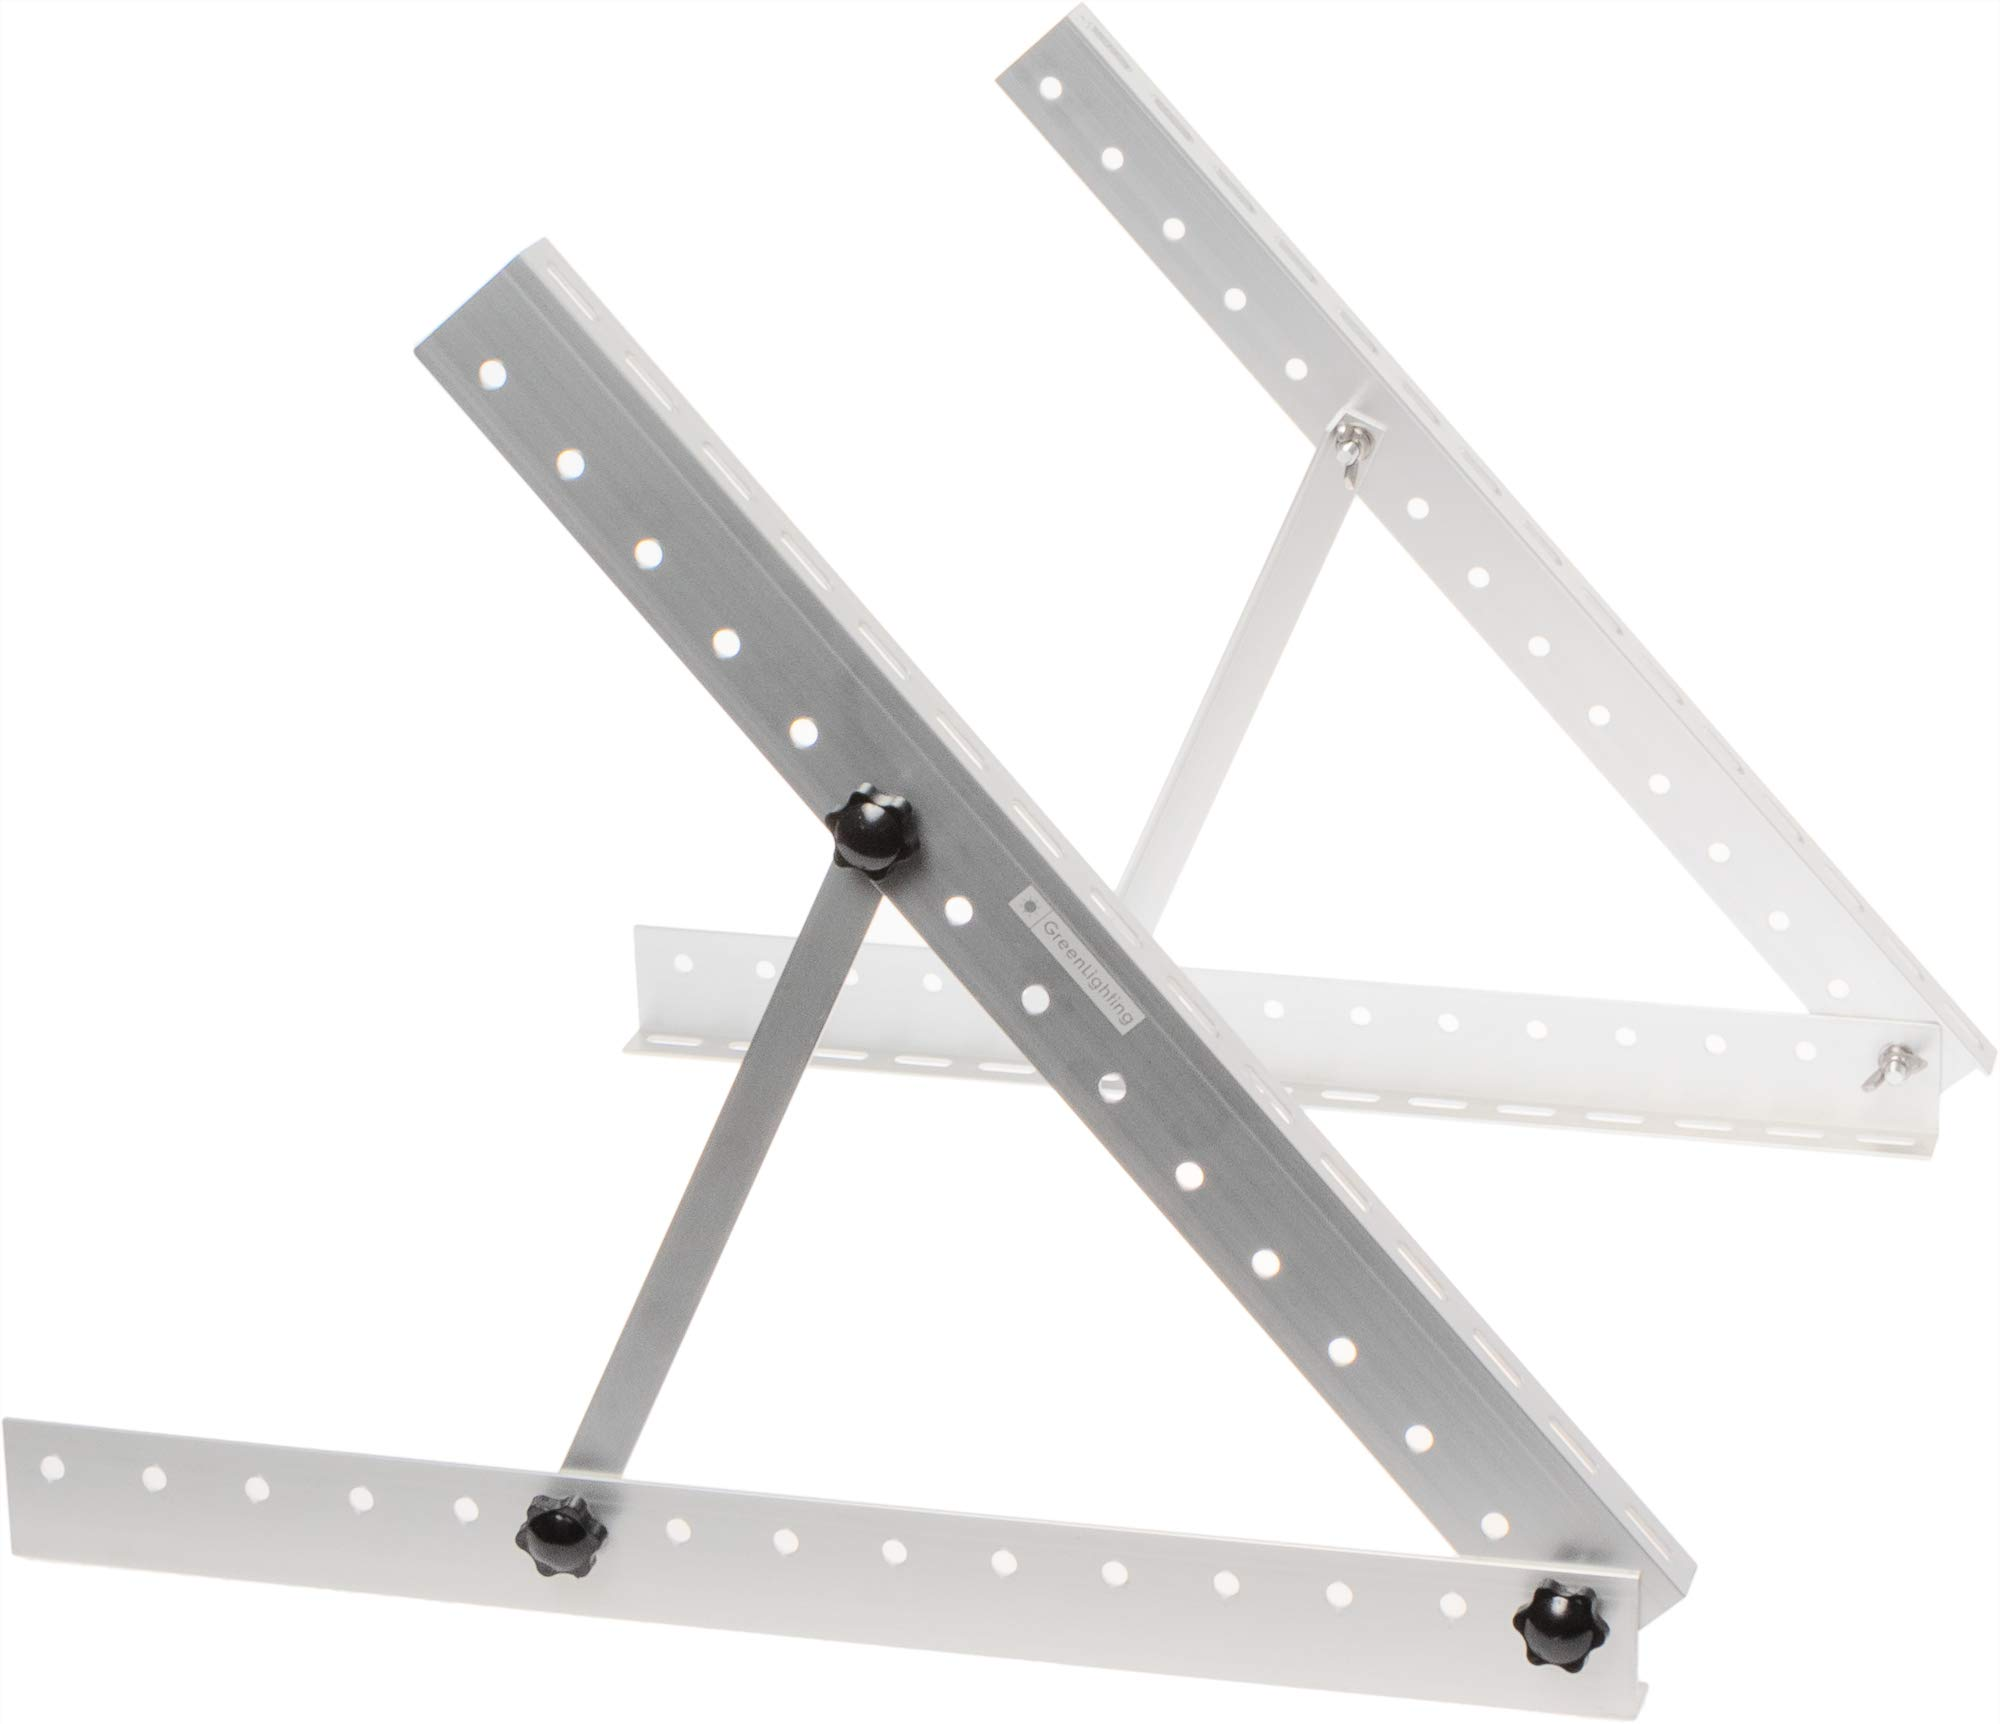 GreenLighting Aluminum Solar Panel Mounting Rack Bracket - 22 Inch Heavy Duty Adjustable Mount Kit for RV, Boat, Motorhome, Camping - 50lb Capacity by GreenLighting